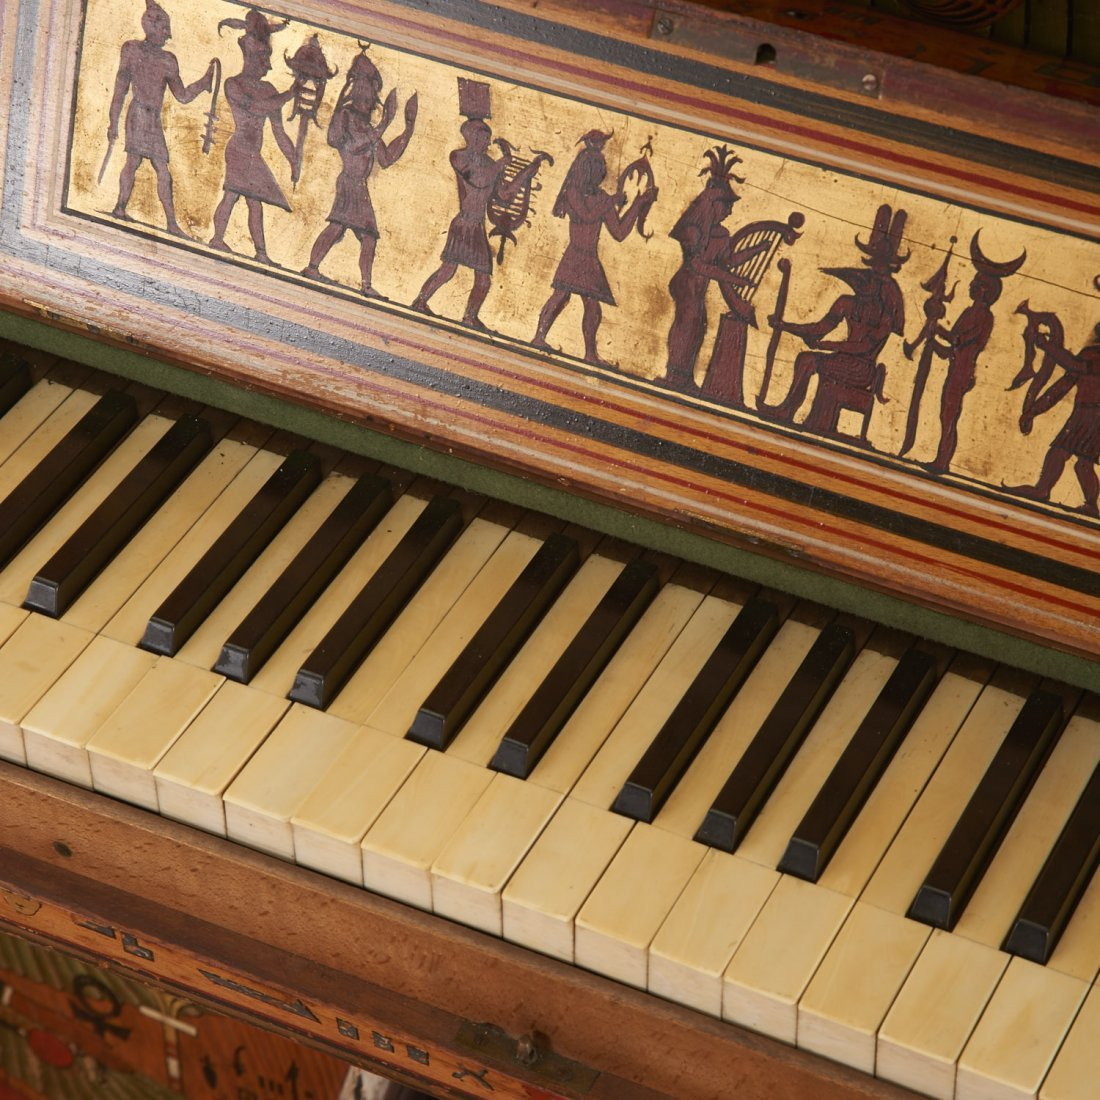 Egyptian Revival spinet piano - 5